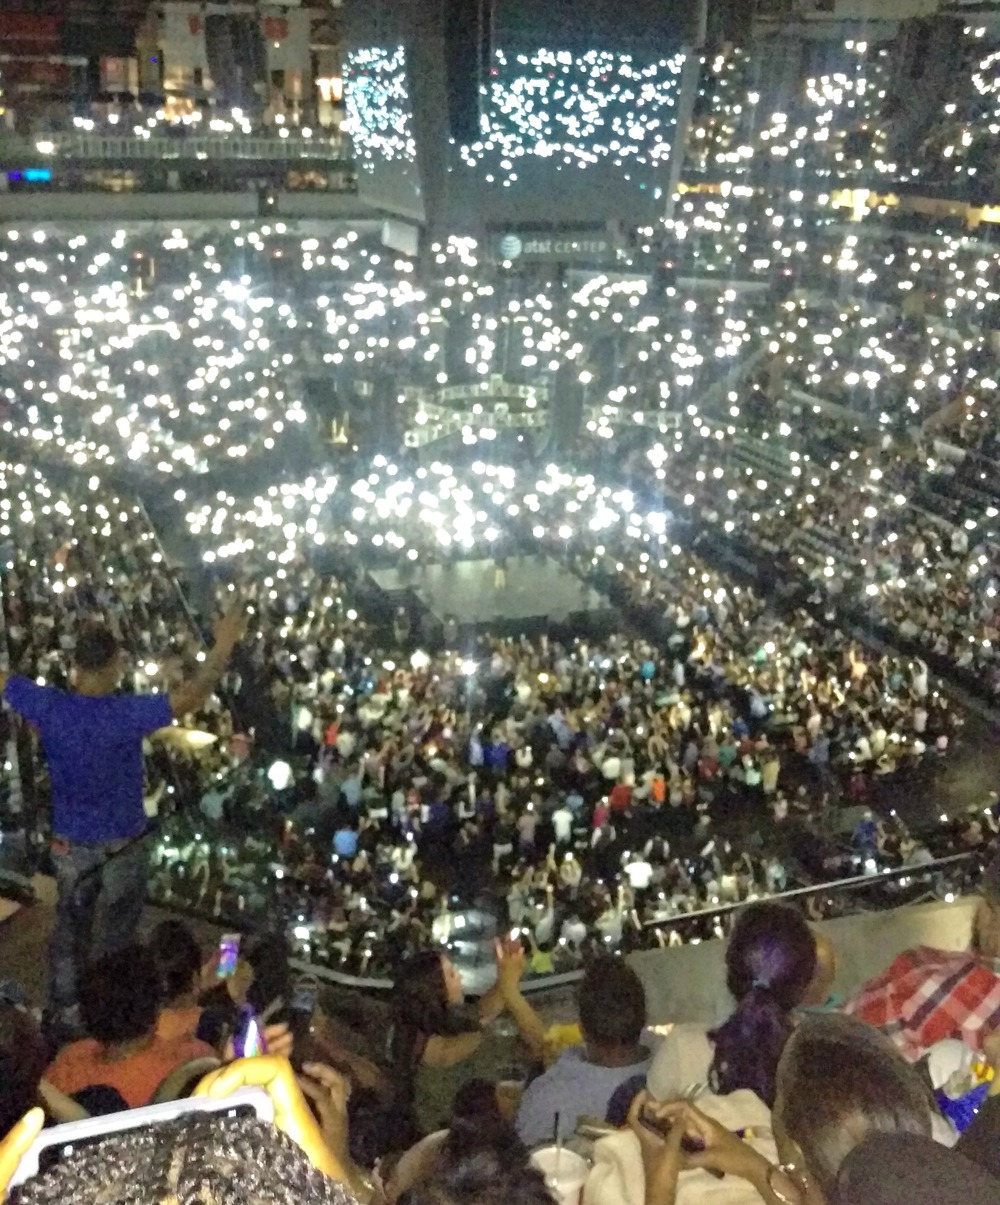 Phones weren't allowed out during the performances, but at one point they told us to light the place up with our phones. So literally, it was lit.